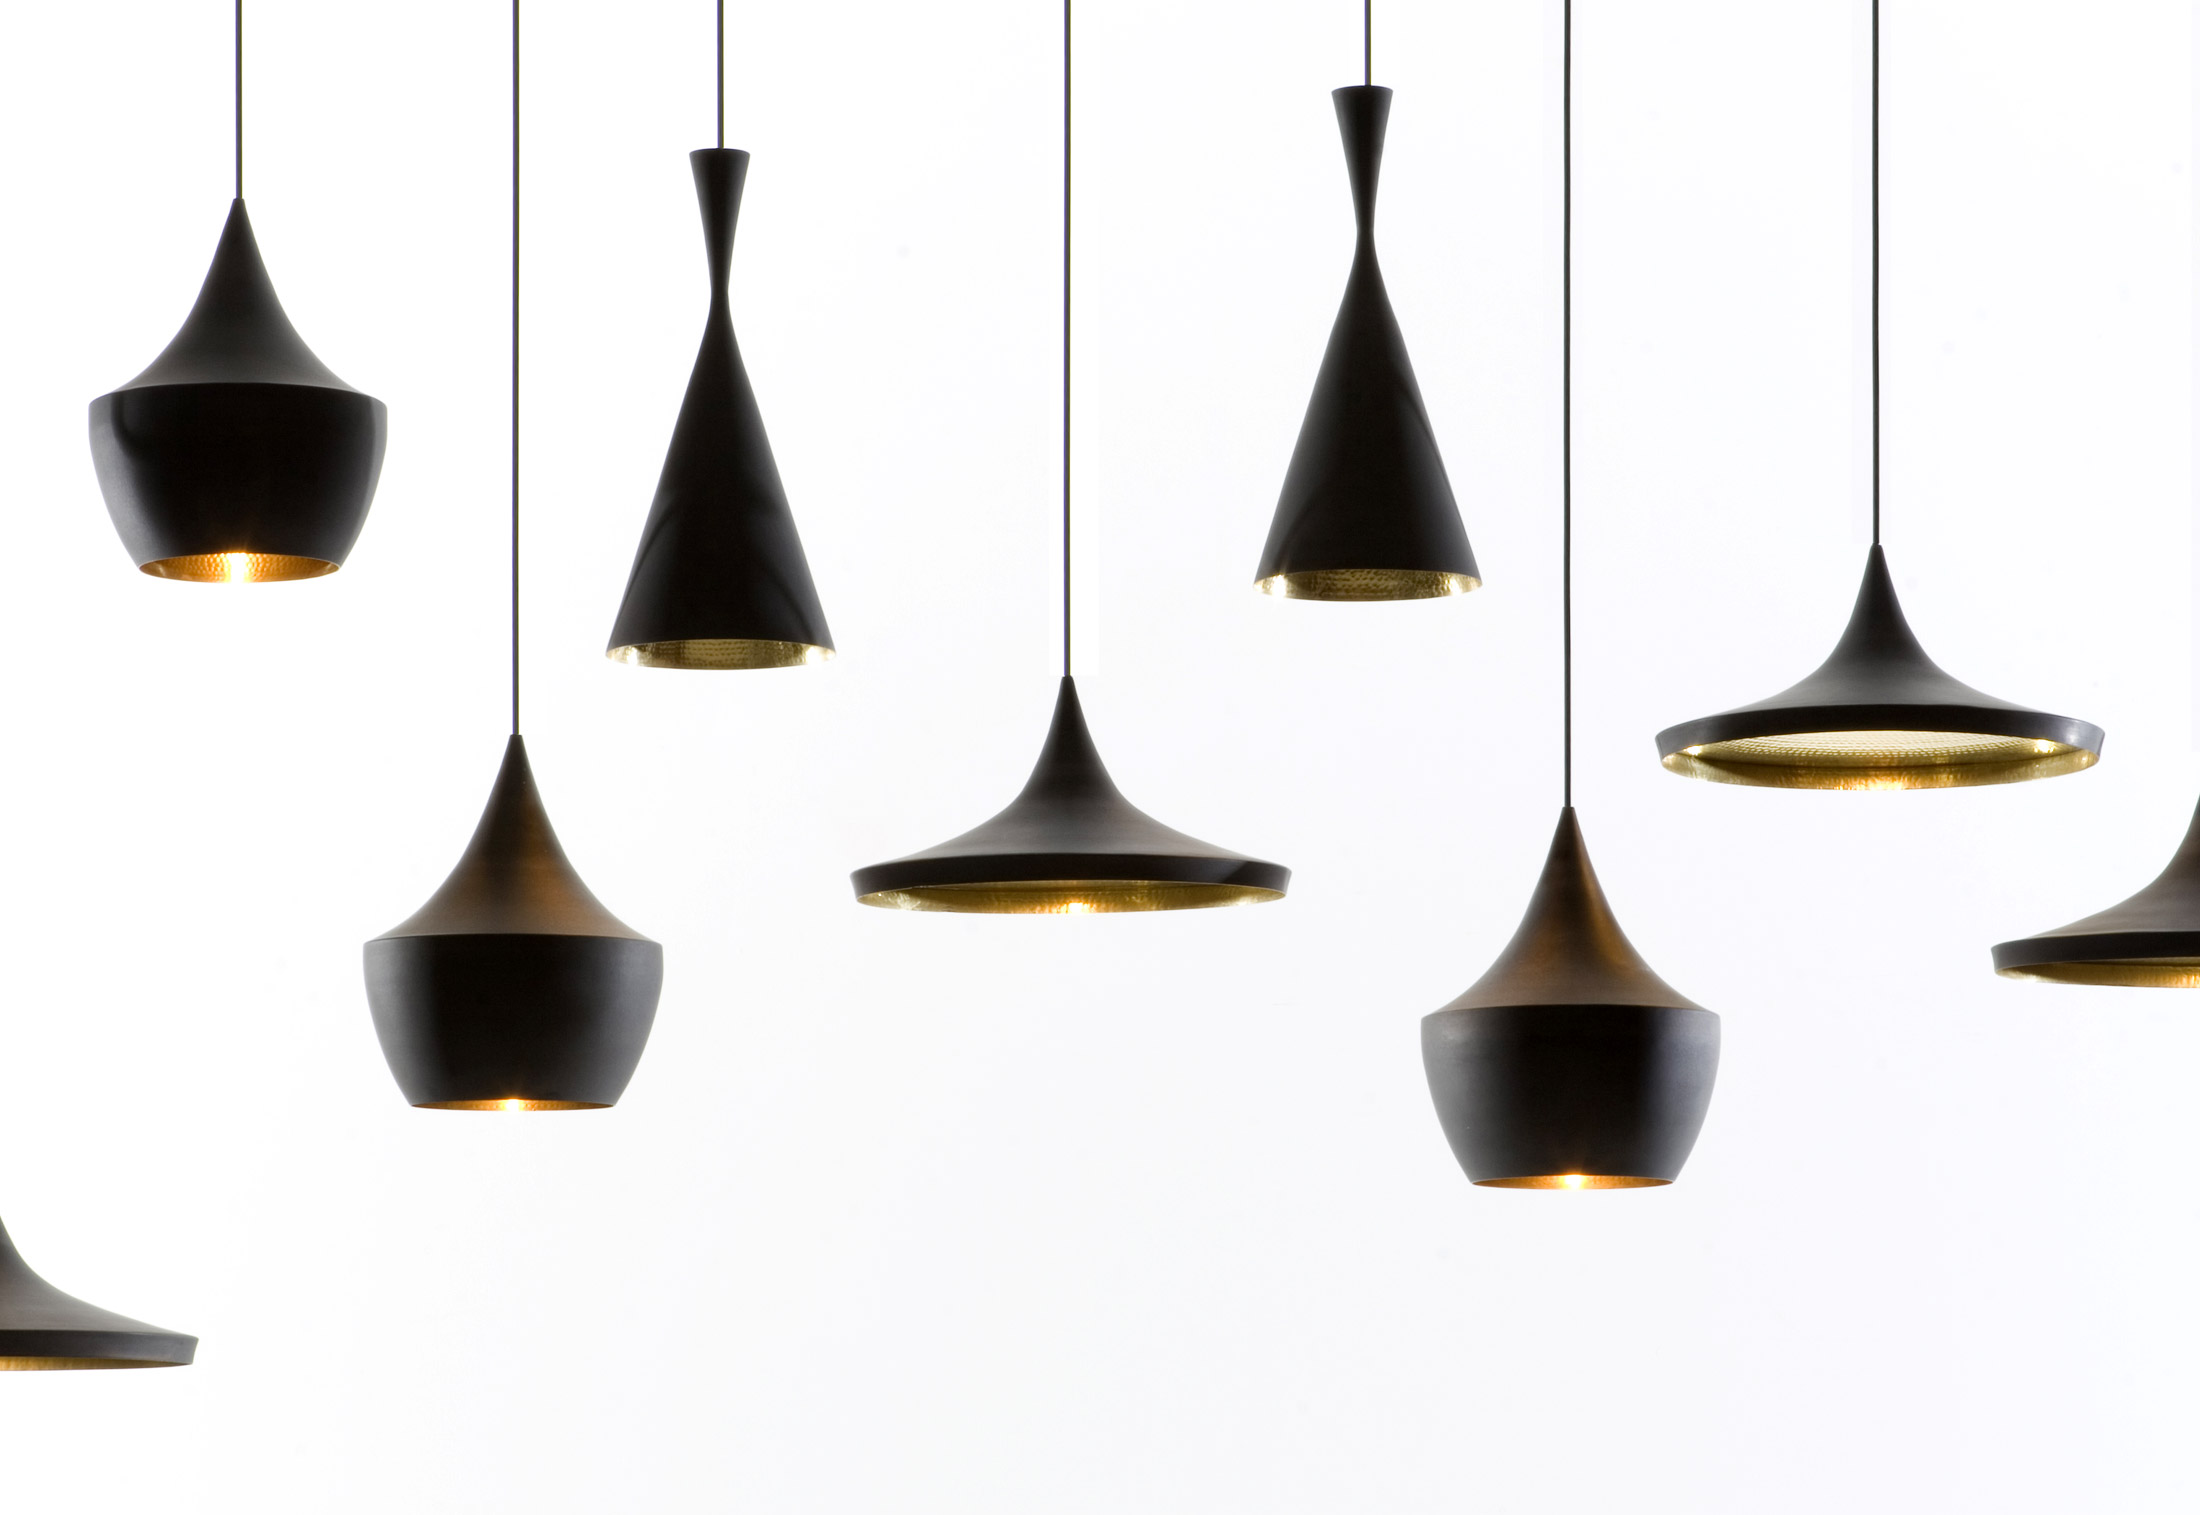 dizaynerskie-predmety-interera-ot-tom-dixon-design